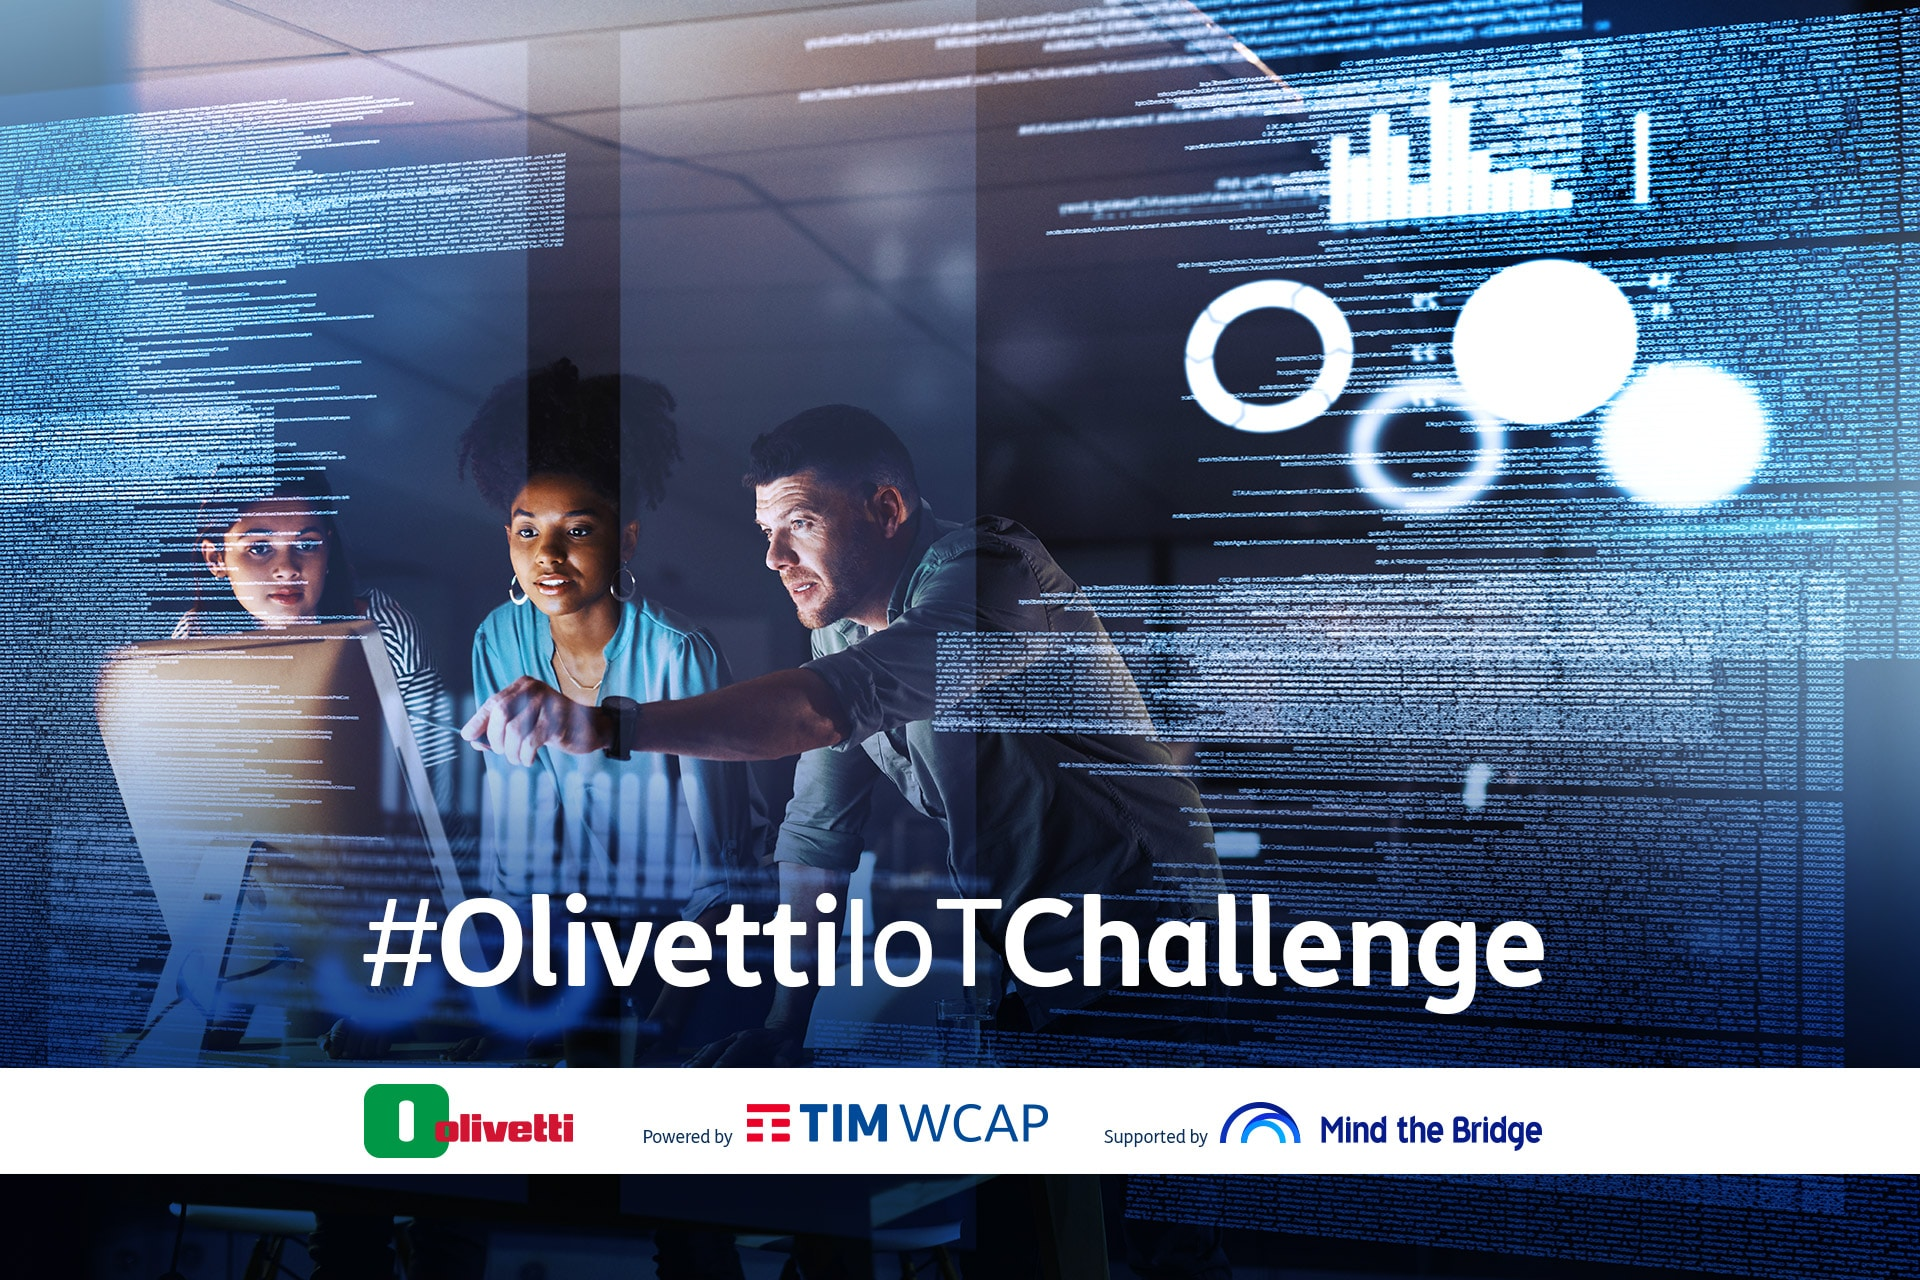 Call for startup Olivetti Iot Challenge,